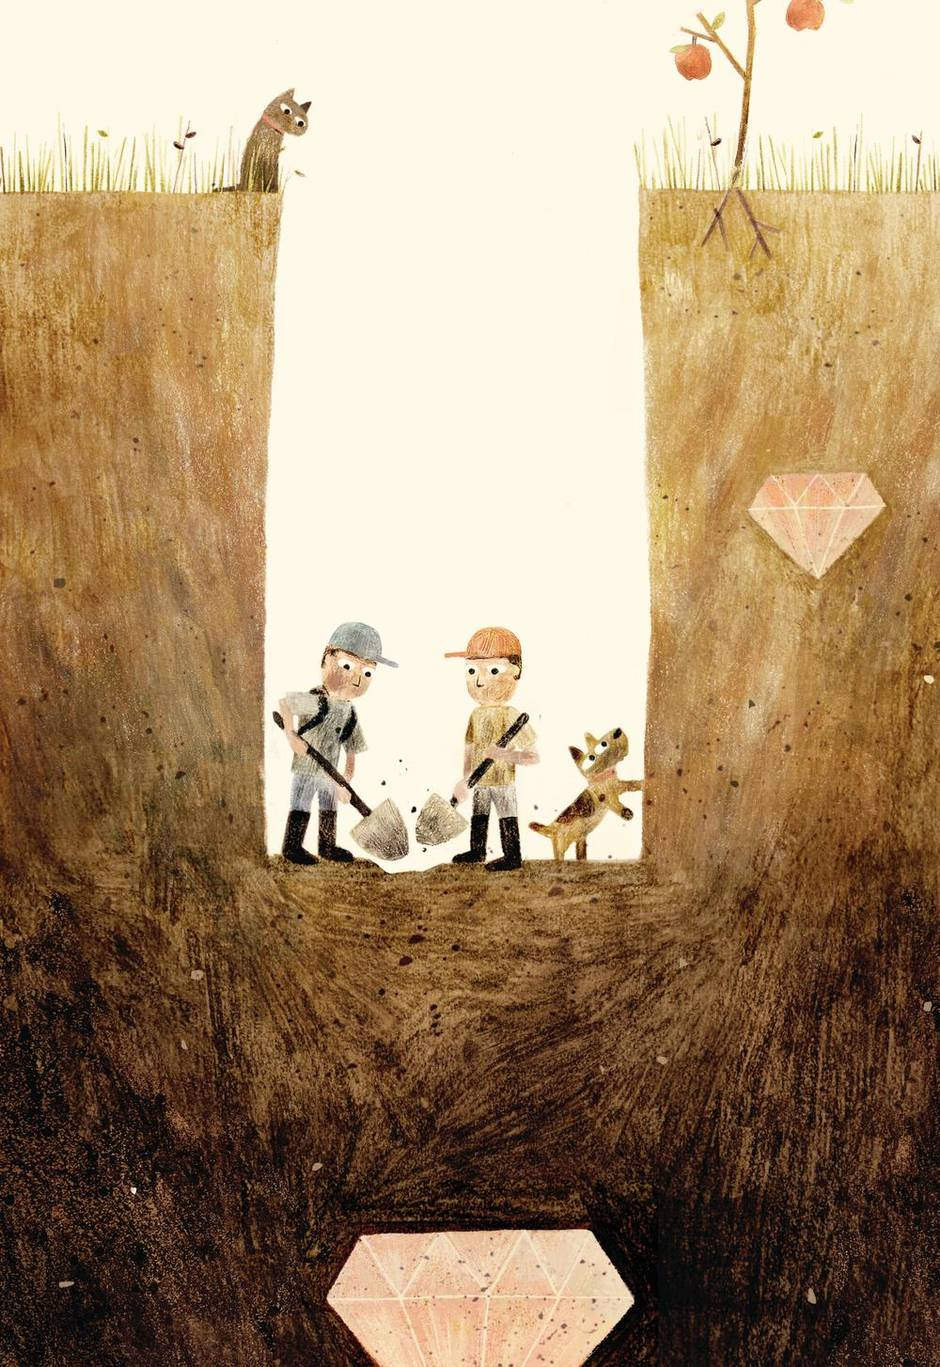 Sam and Dave Dig a Hole. Illustrator: Jon Klassen. Author: Mac Barnett